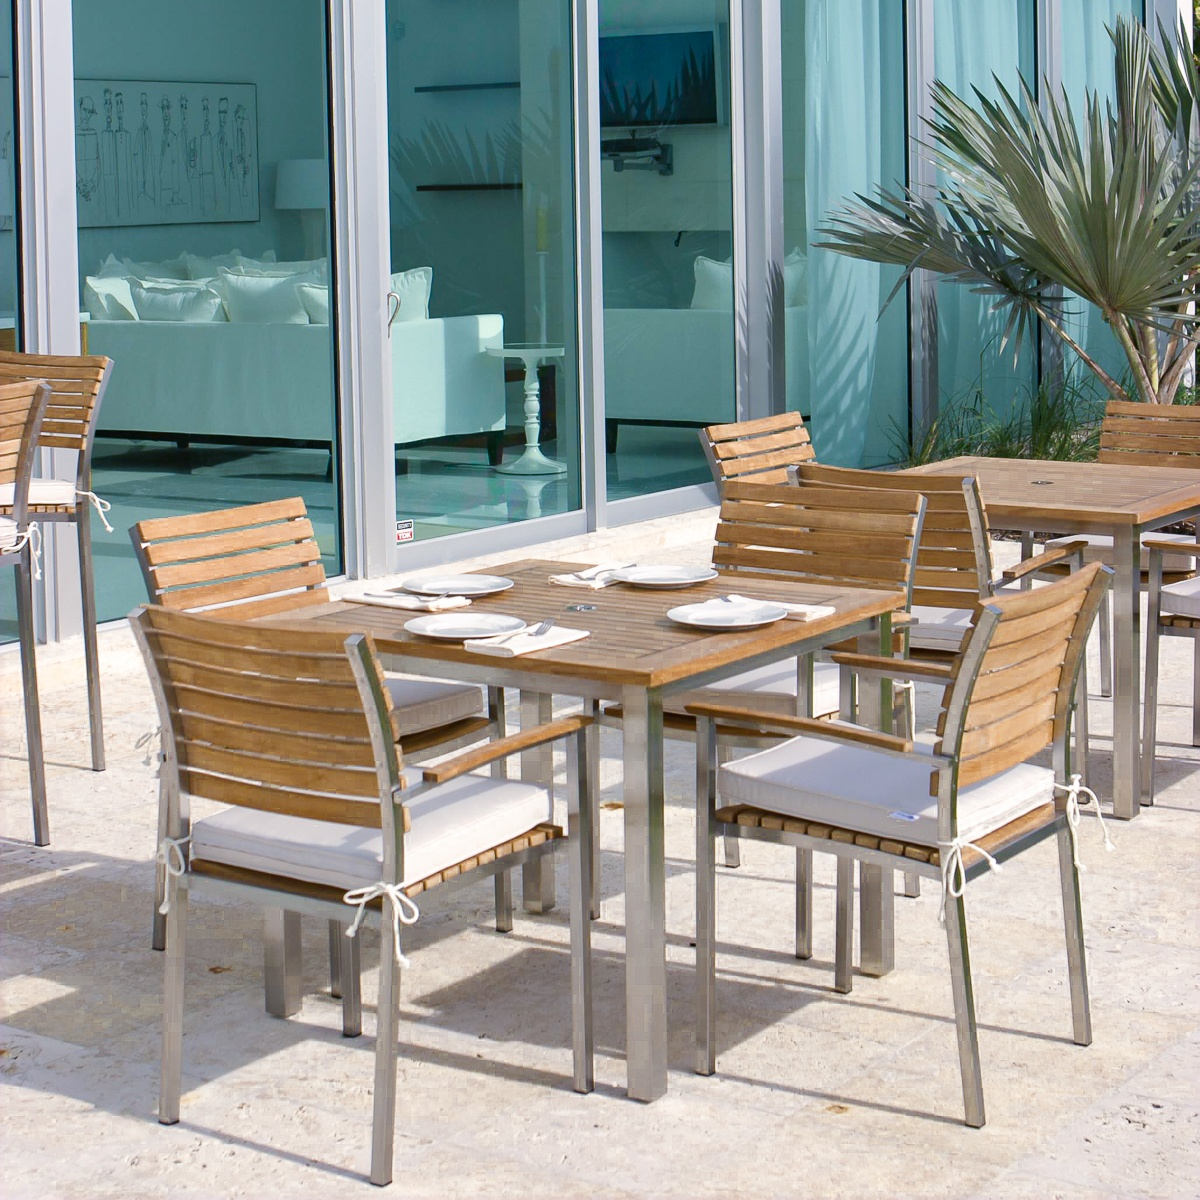 teak steamer chair resin wicker patio table and chairs stainless steel dining set - westminster outdoor furniture